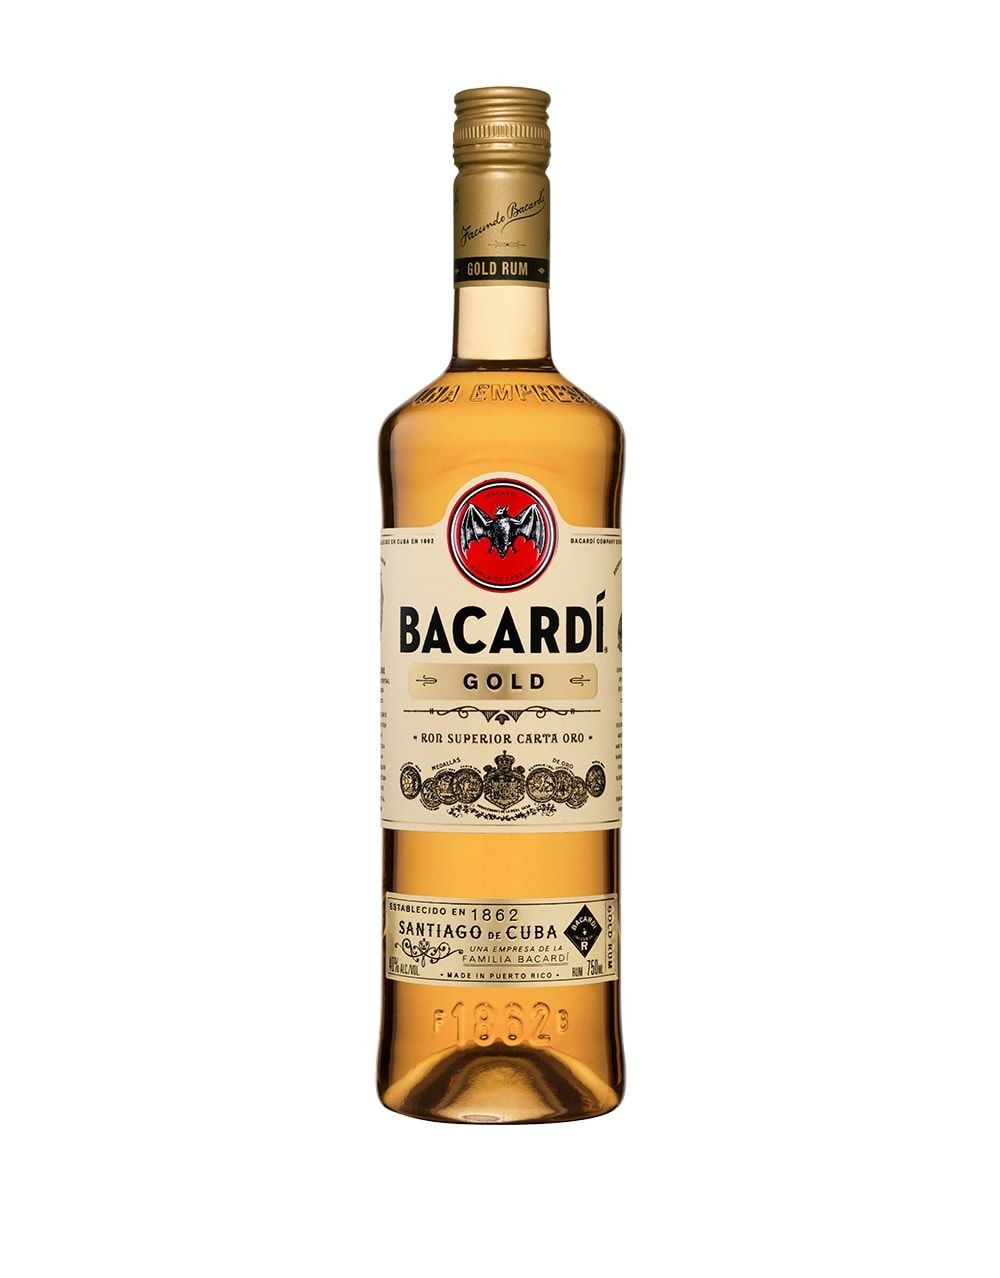 Bacard 237 Gold Rum Buy Online Or Send As A Gift Reservebar